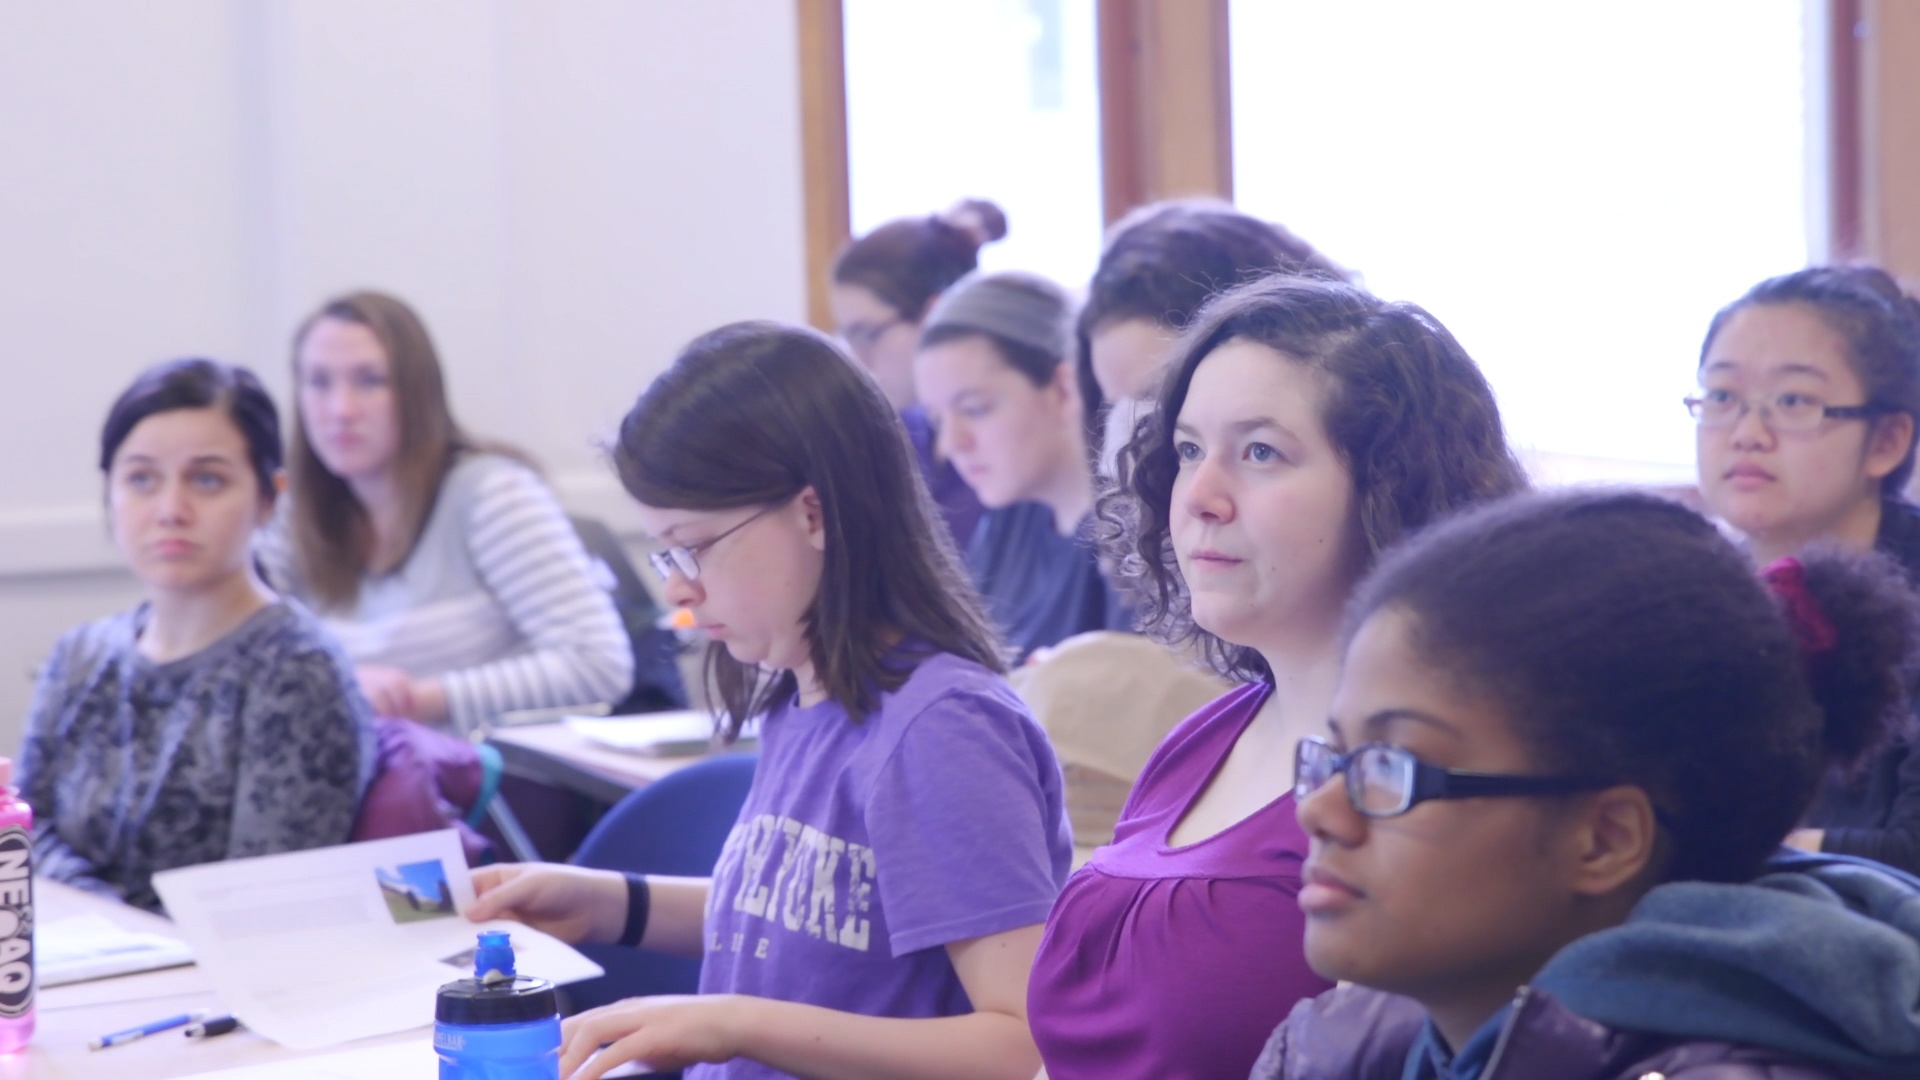 Mount Holyoke students in class